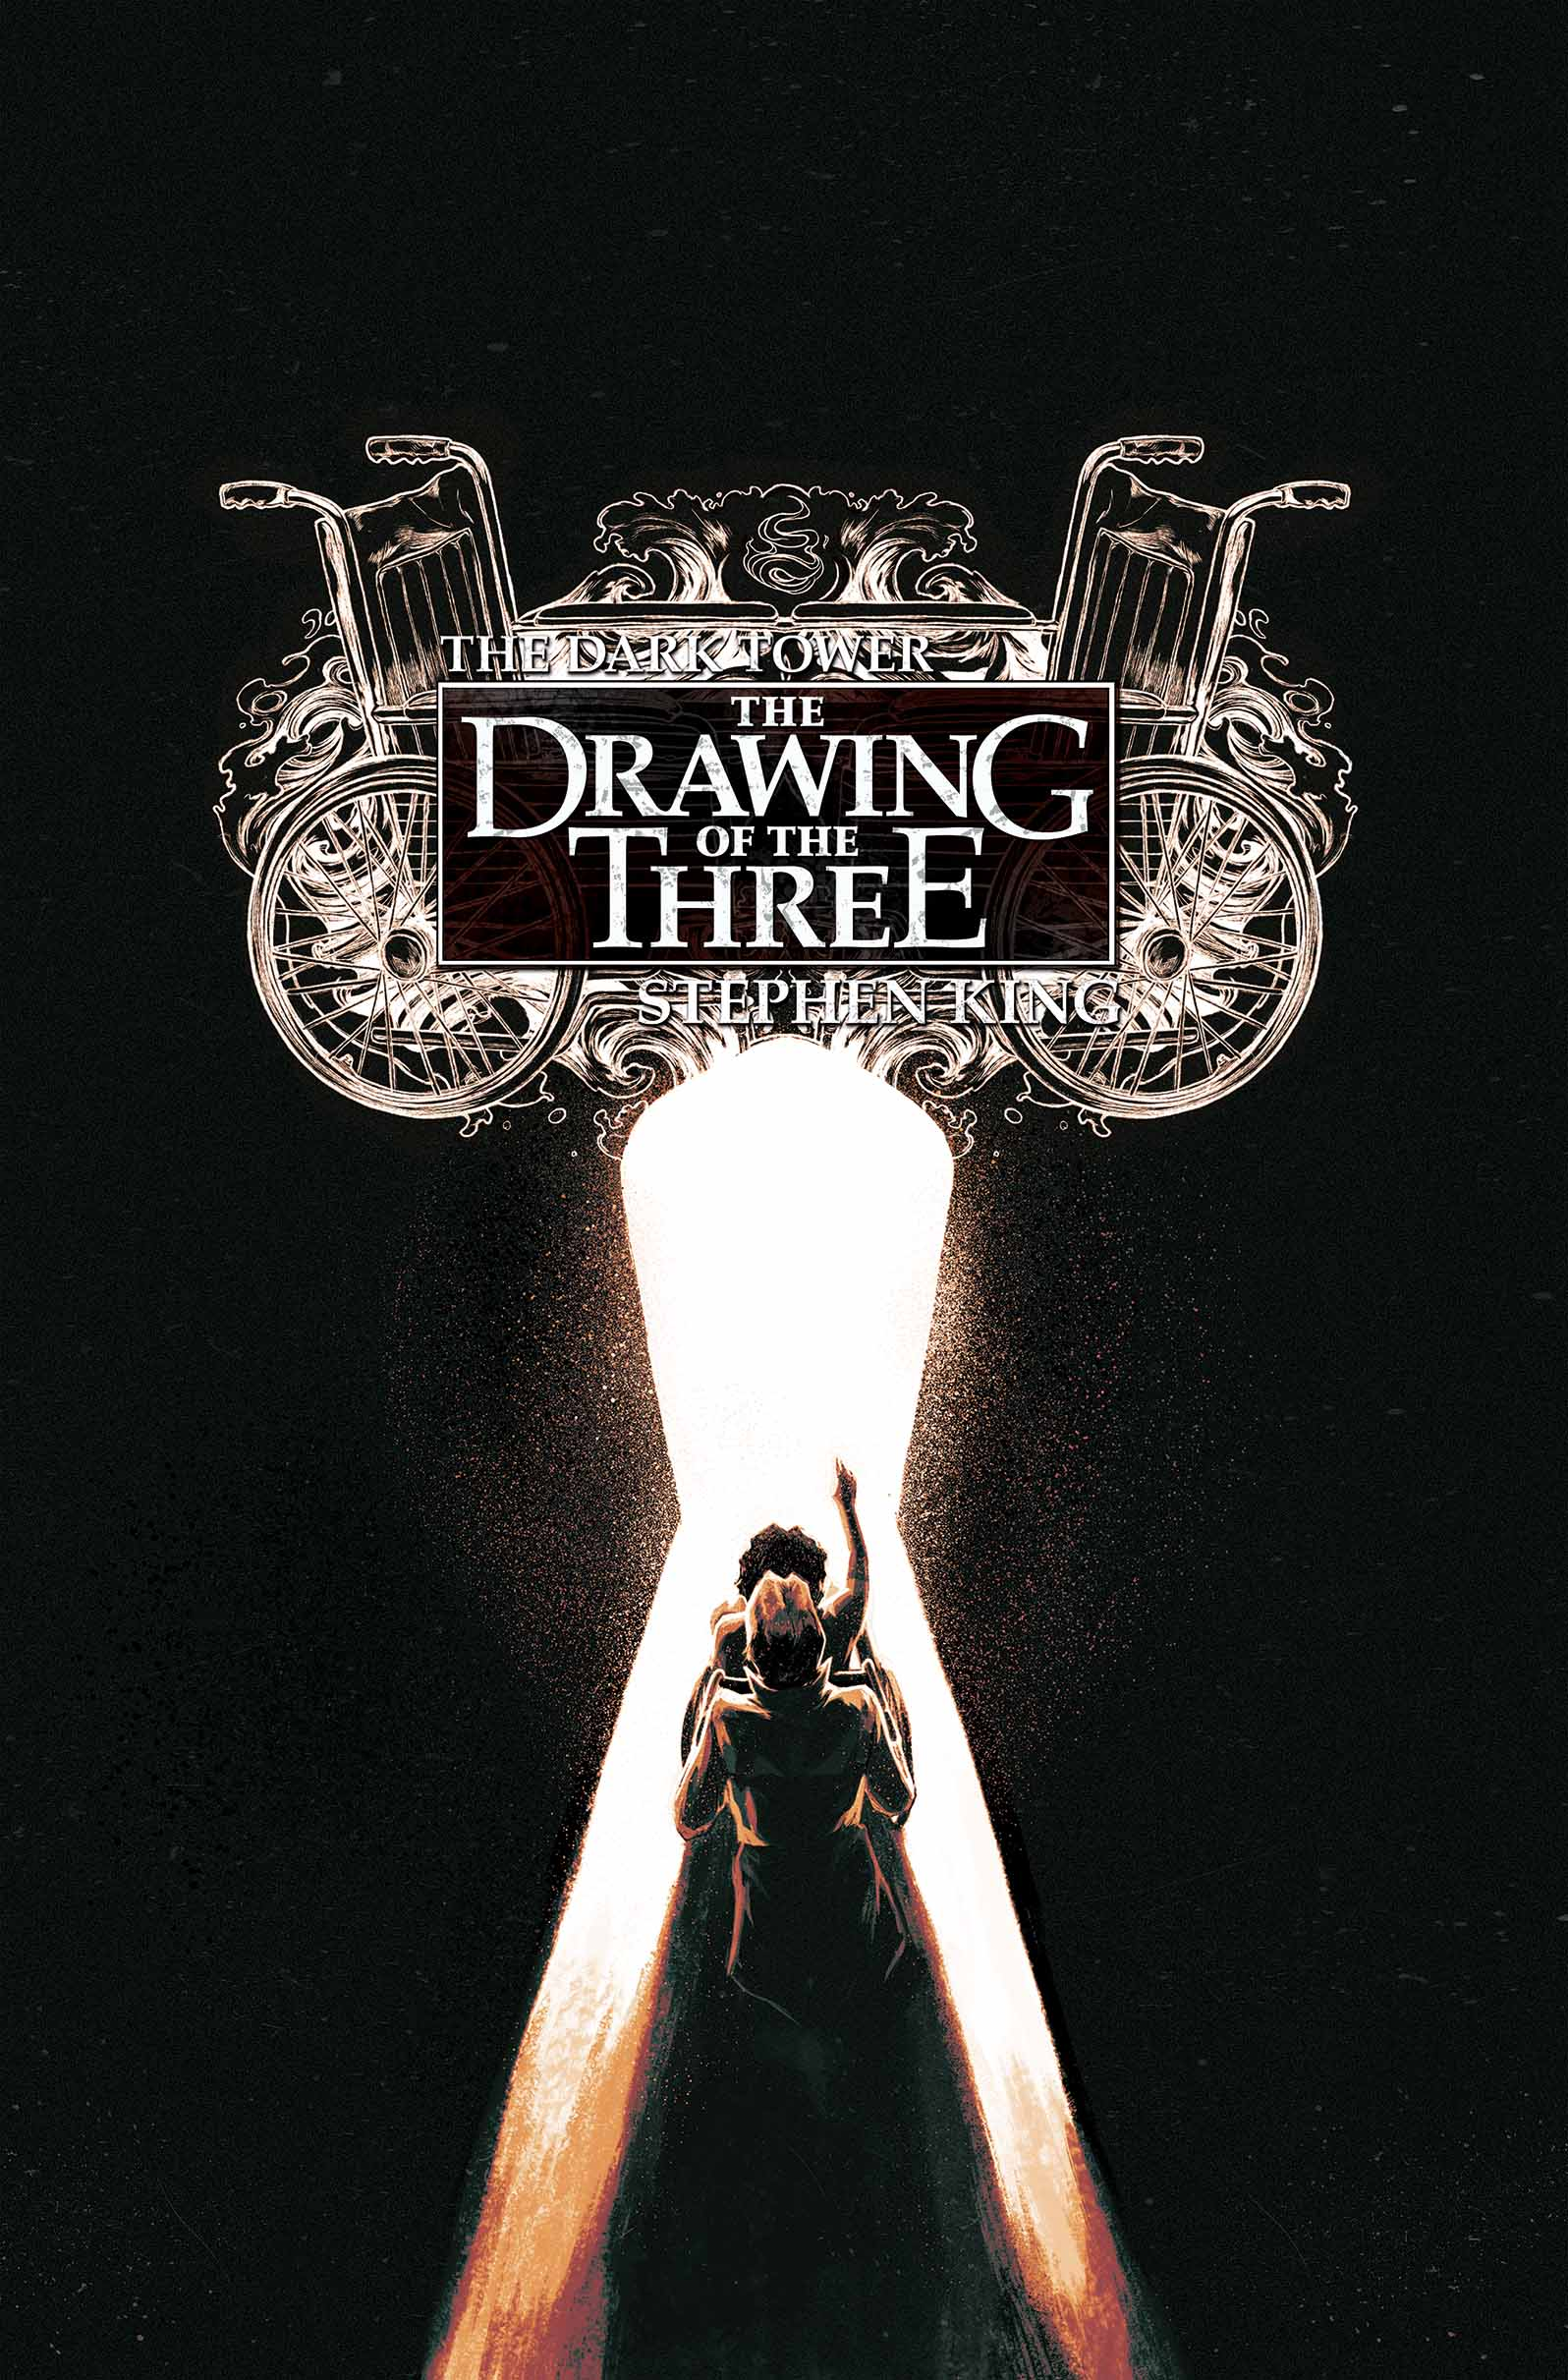 Dark Tower: The Drawing of the Three - Lady of Shadows (2015) #5